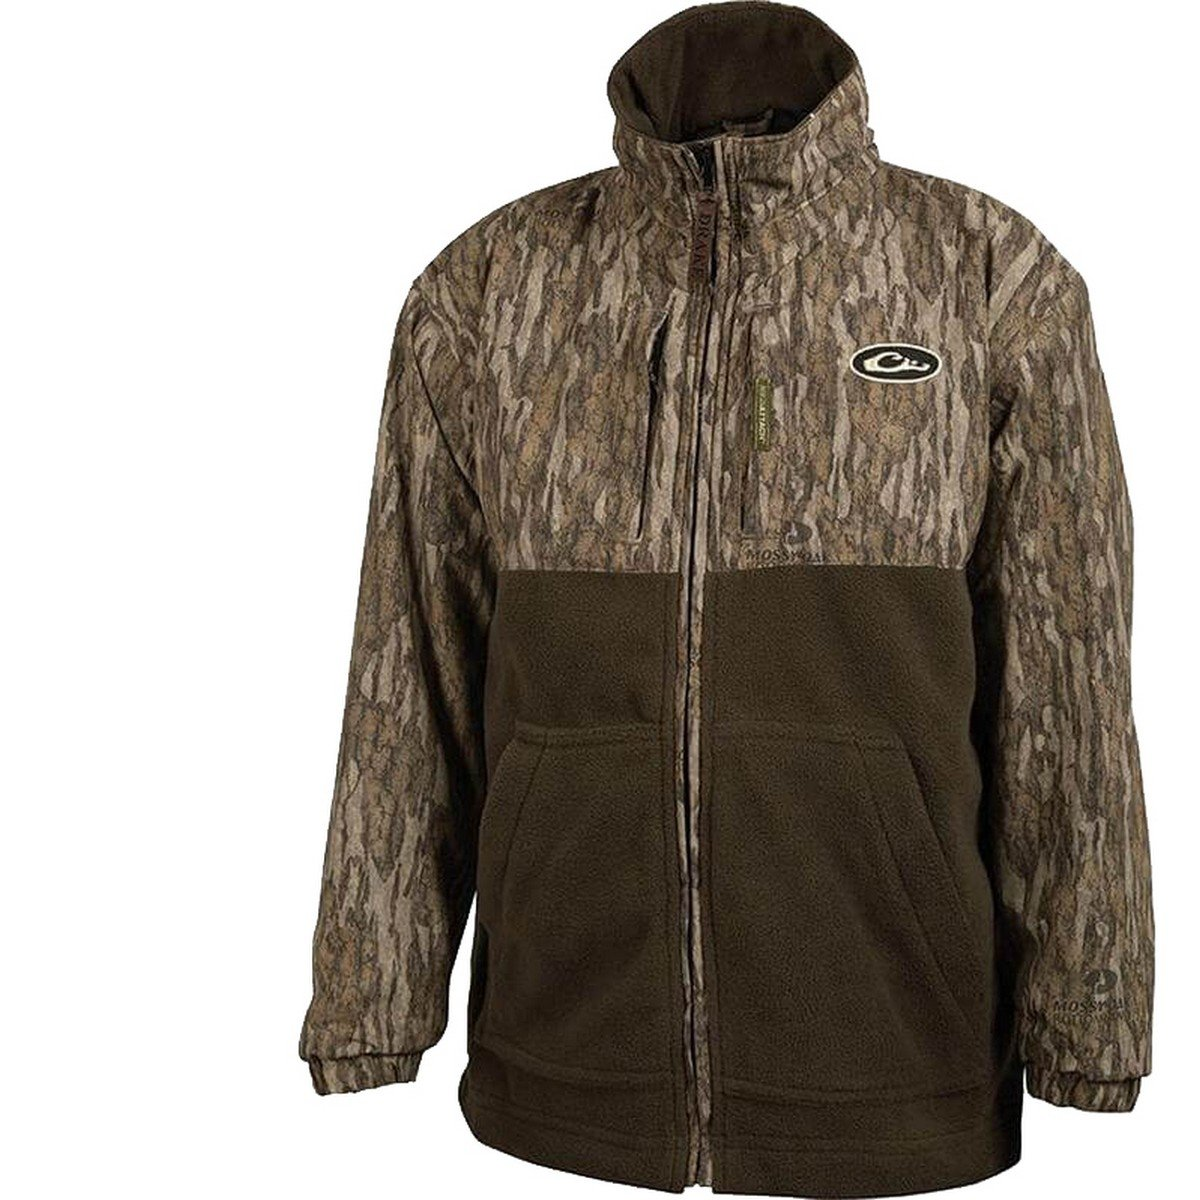 Drake Young Guns MST Youth Eqwader - Full Zip (Mossy Oak Bottomland) (8) by Drake